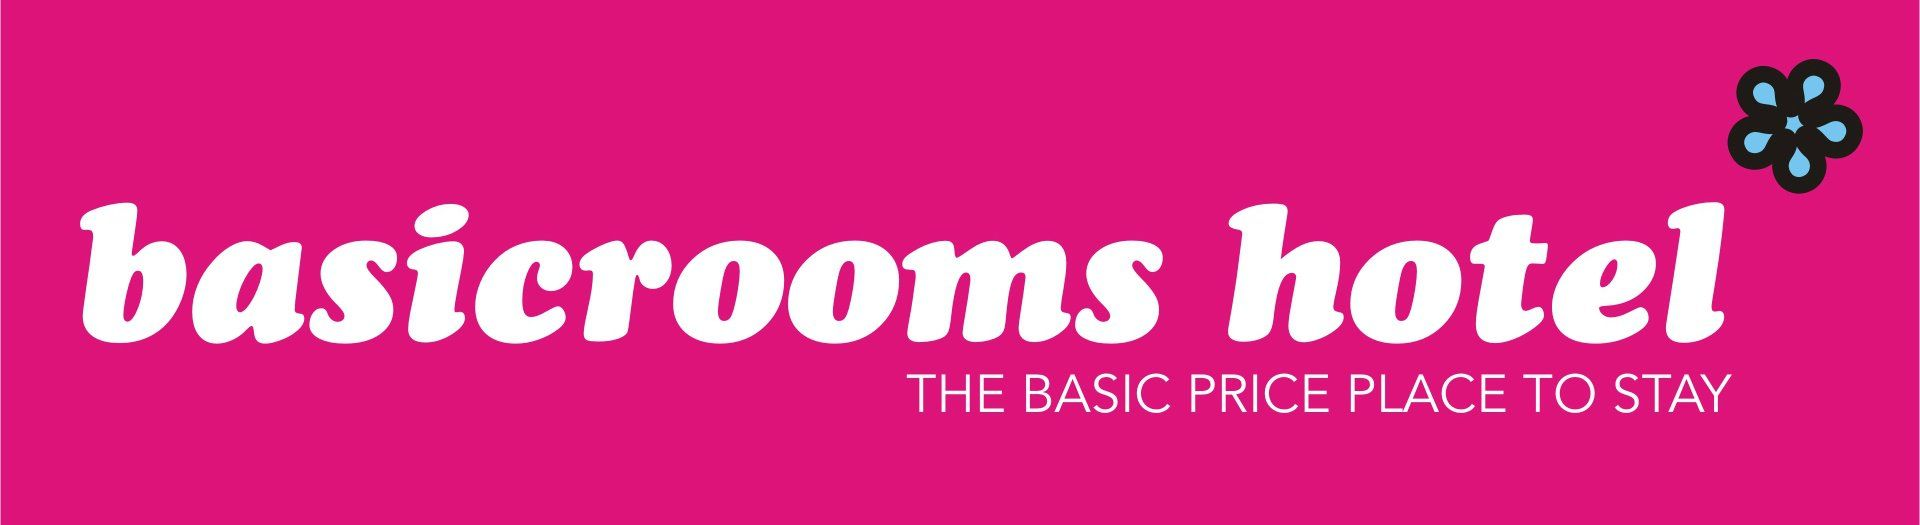 BASIC ROOMS HOTEL